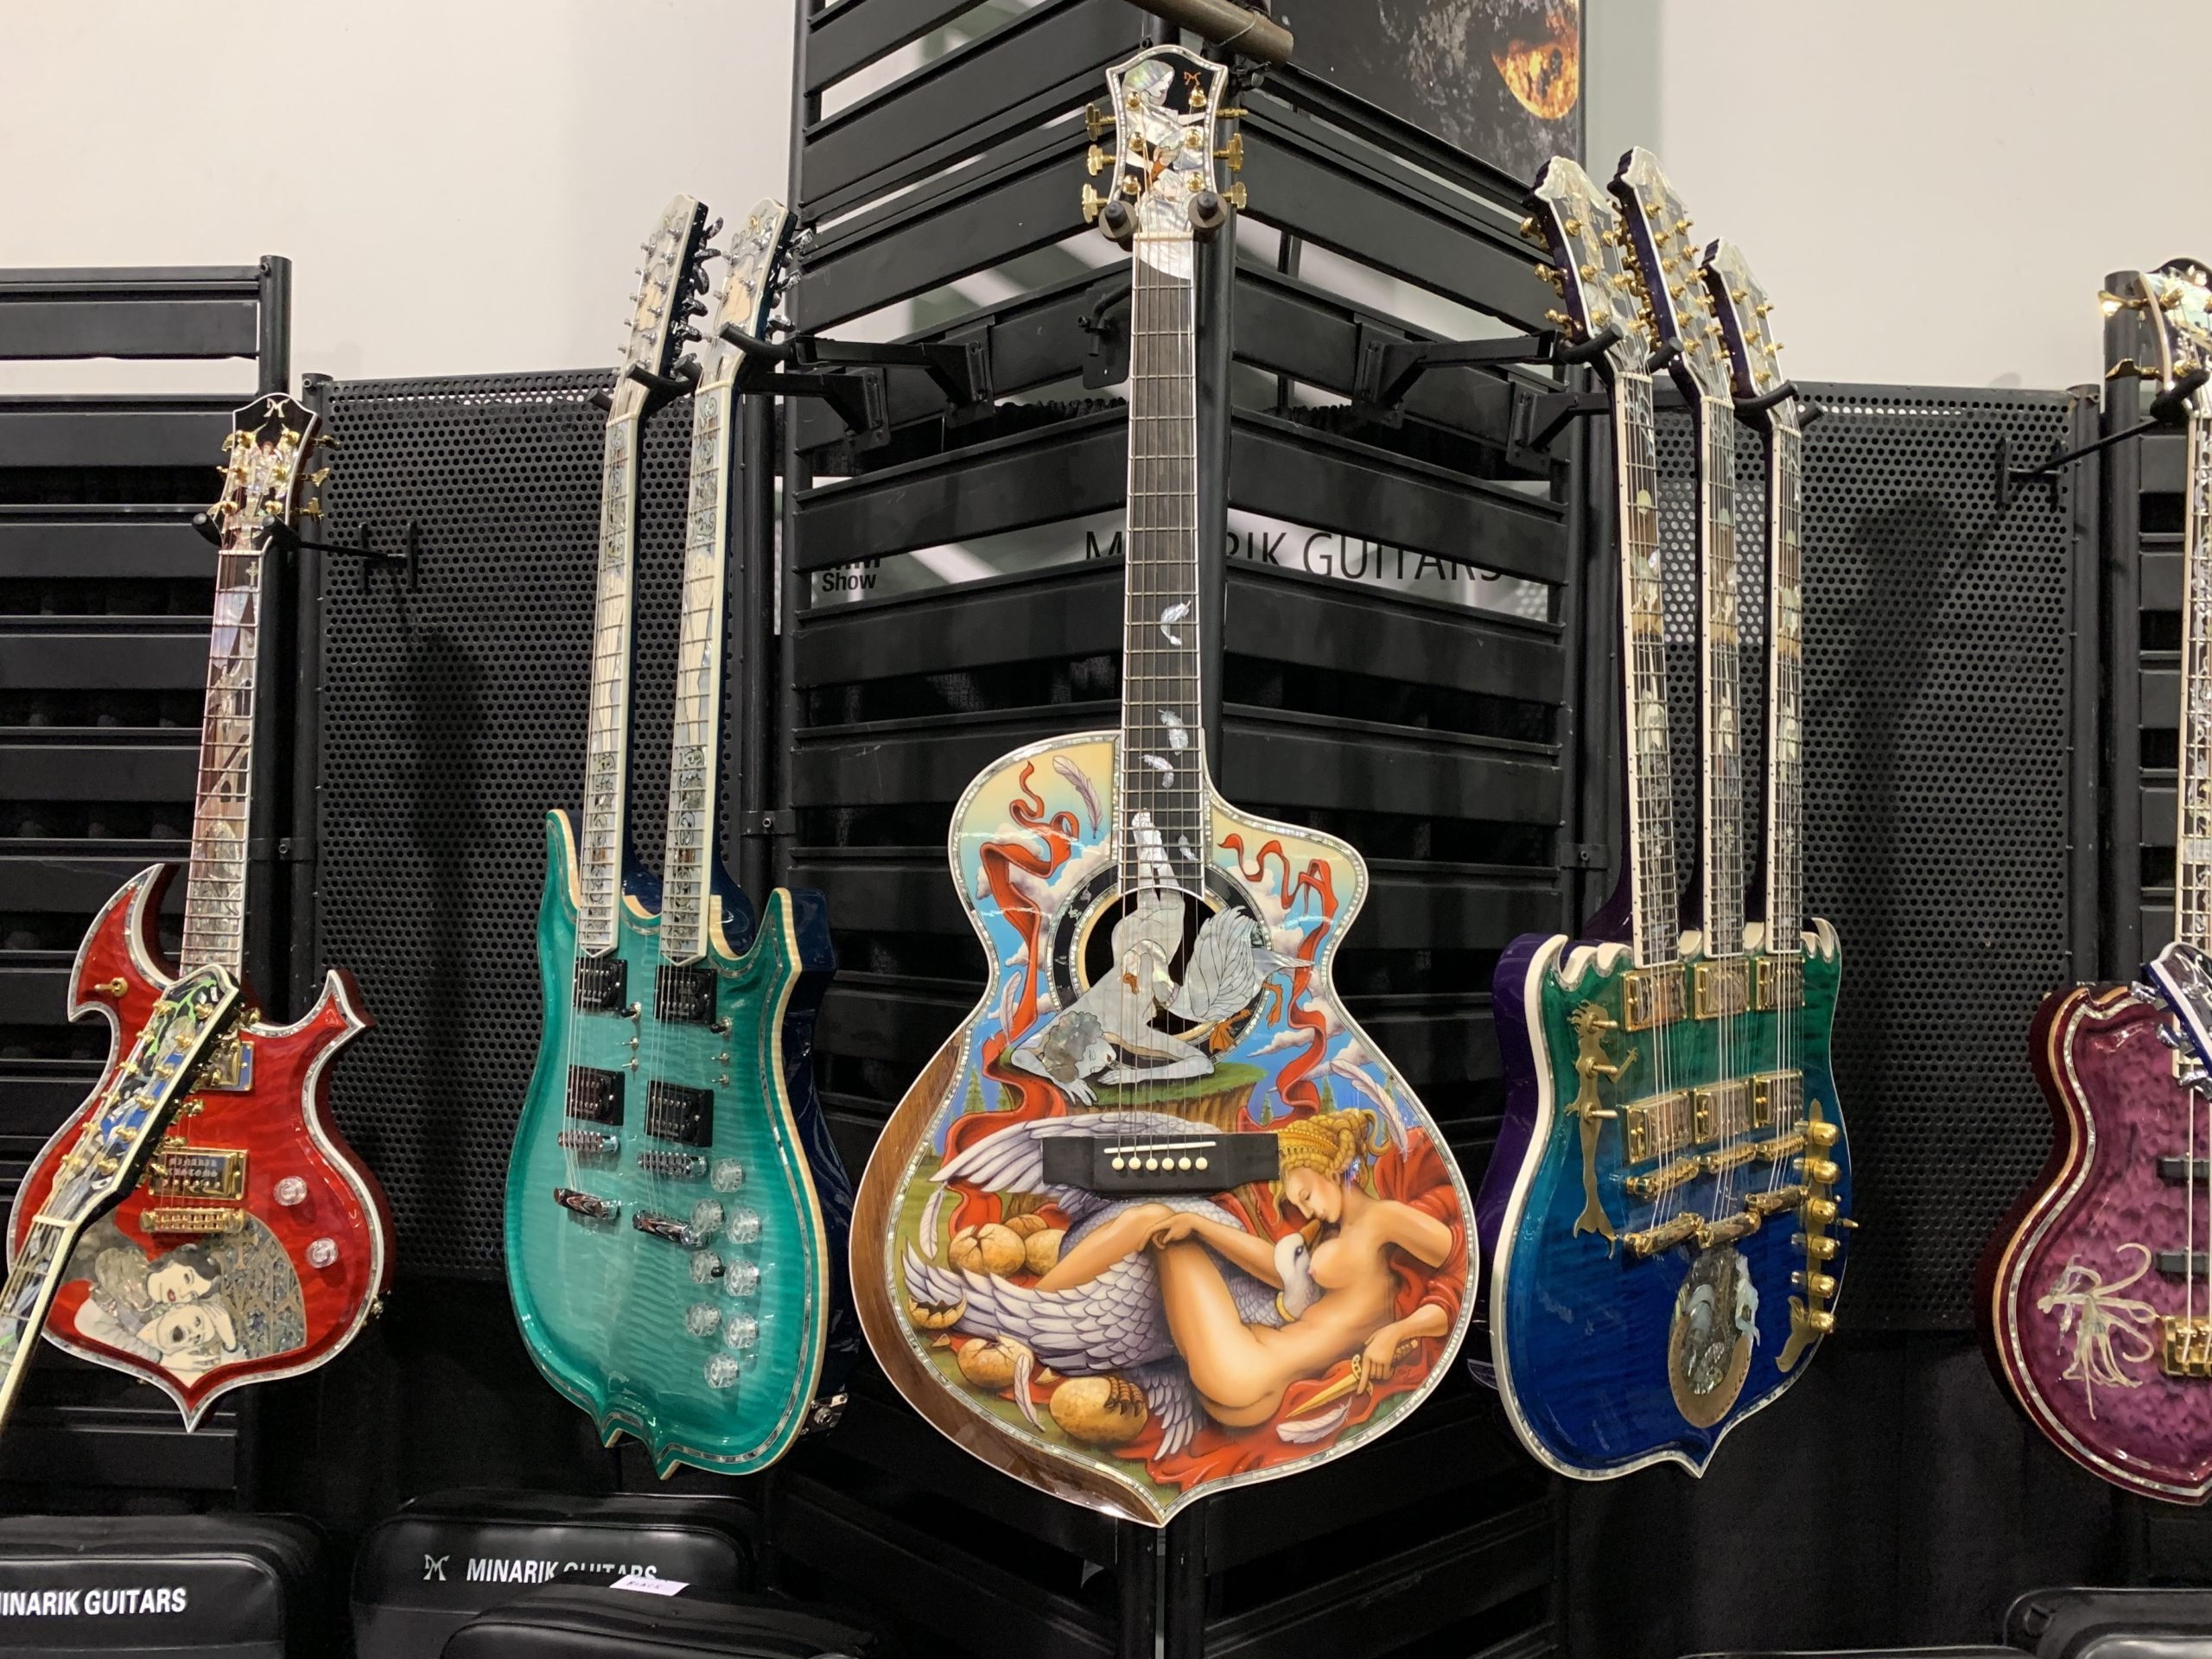 Winter NAMM 2020 - Day 2 - Vlog January 17th - The Guitar Channel